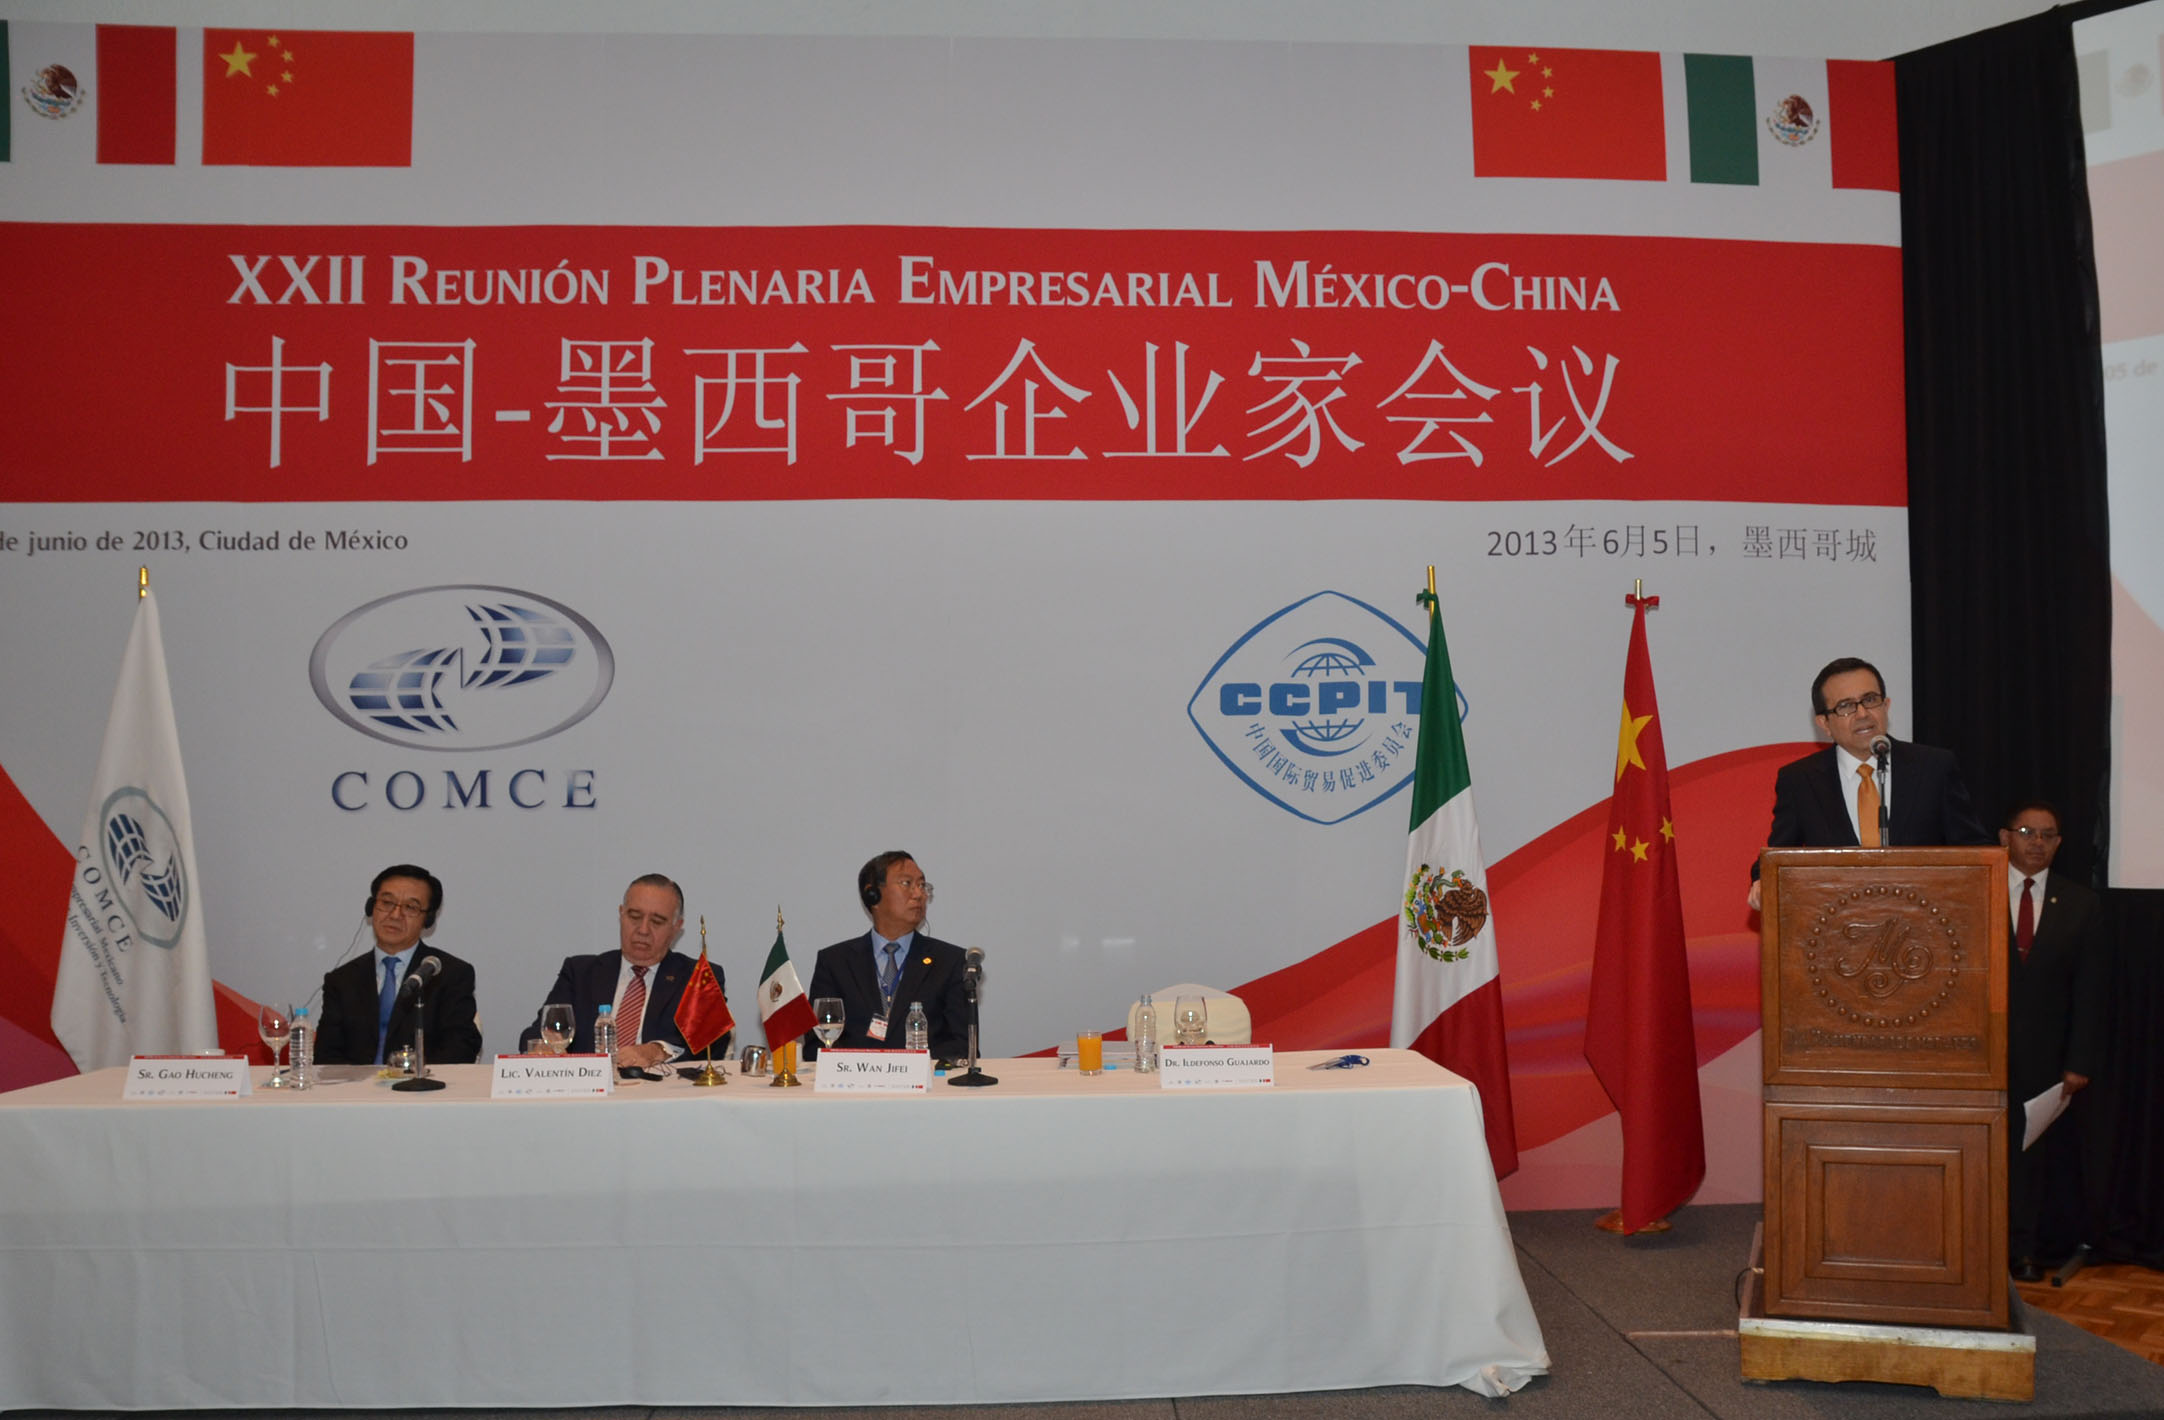 Xxii reunion plenaria empresarial mex. china 4